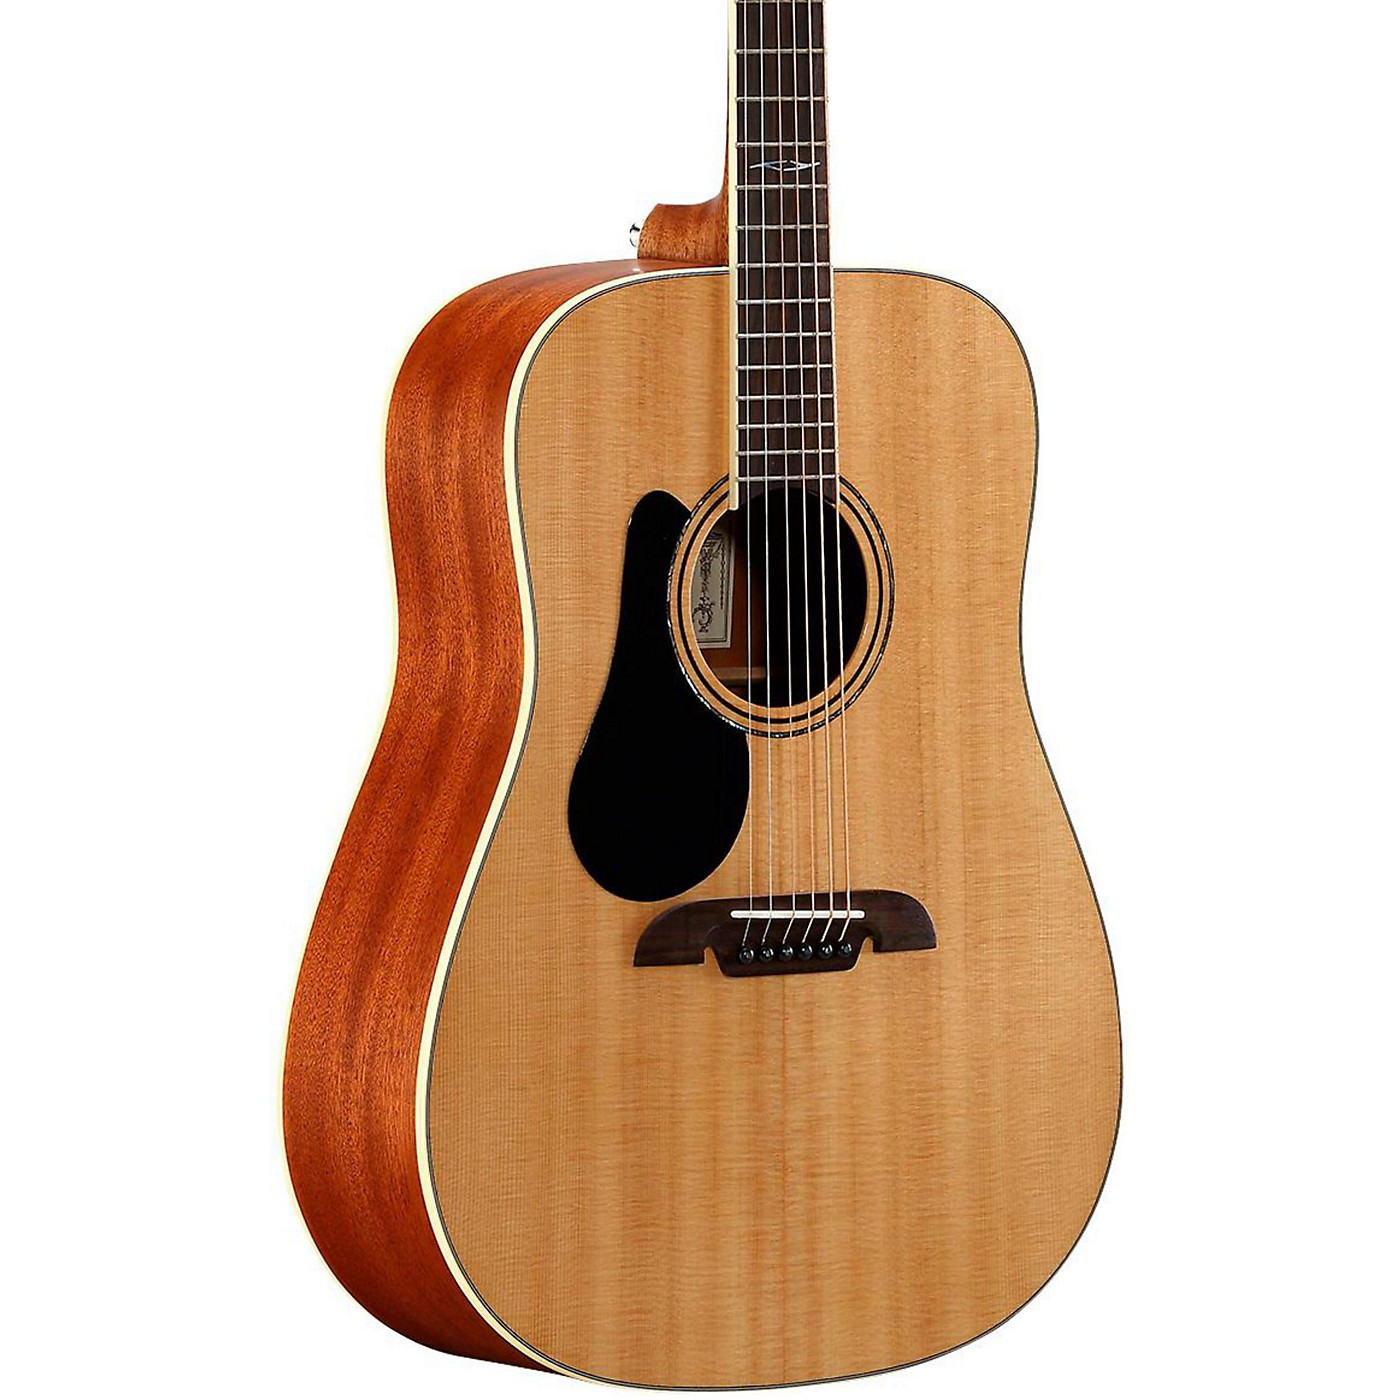 Alvarez Artist Series AD60L Dreadnought Left Handed Guitar thumbnail